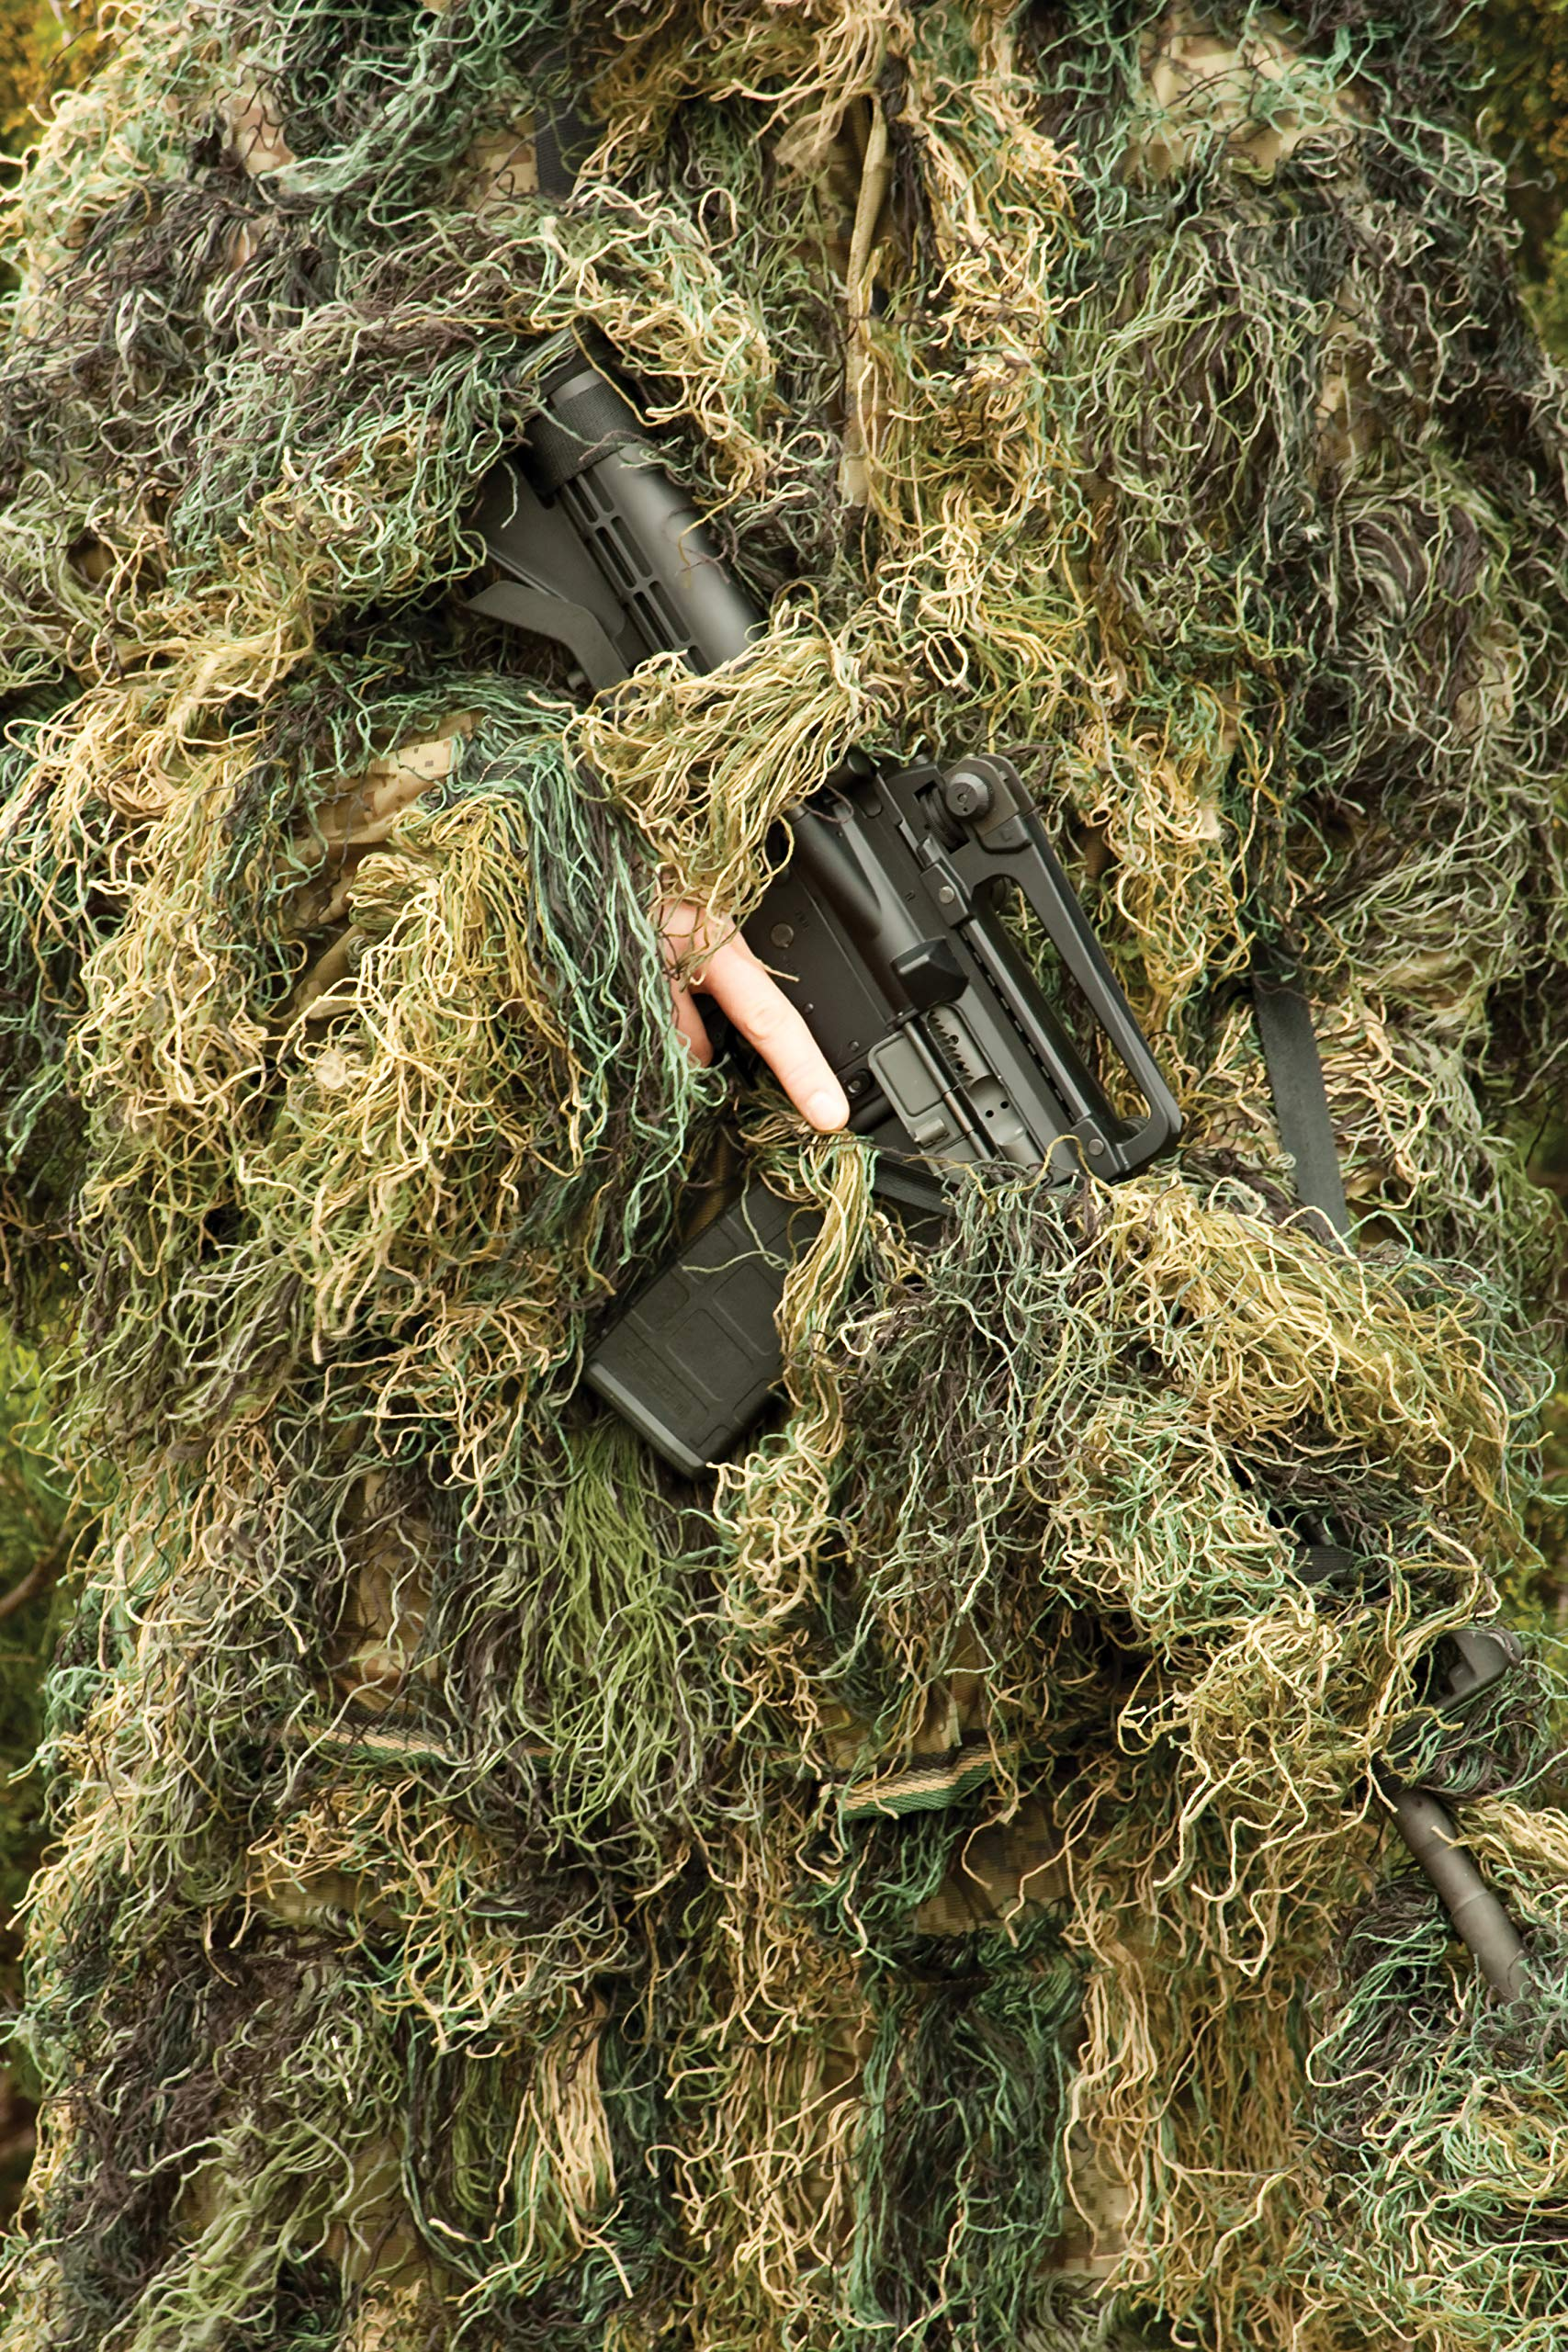 Red Rock Outdoor Gear - Ghillie Suit by Red Rock Outdoor Gear (Image #8)